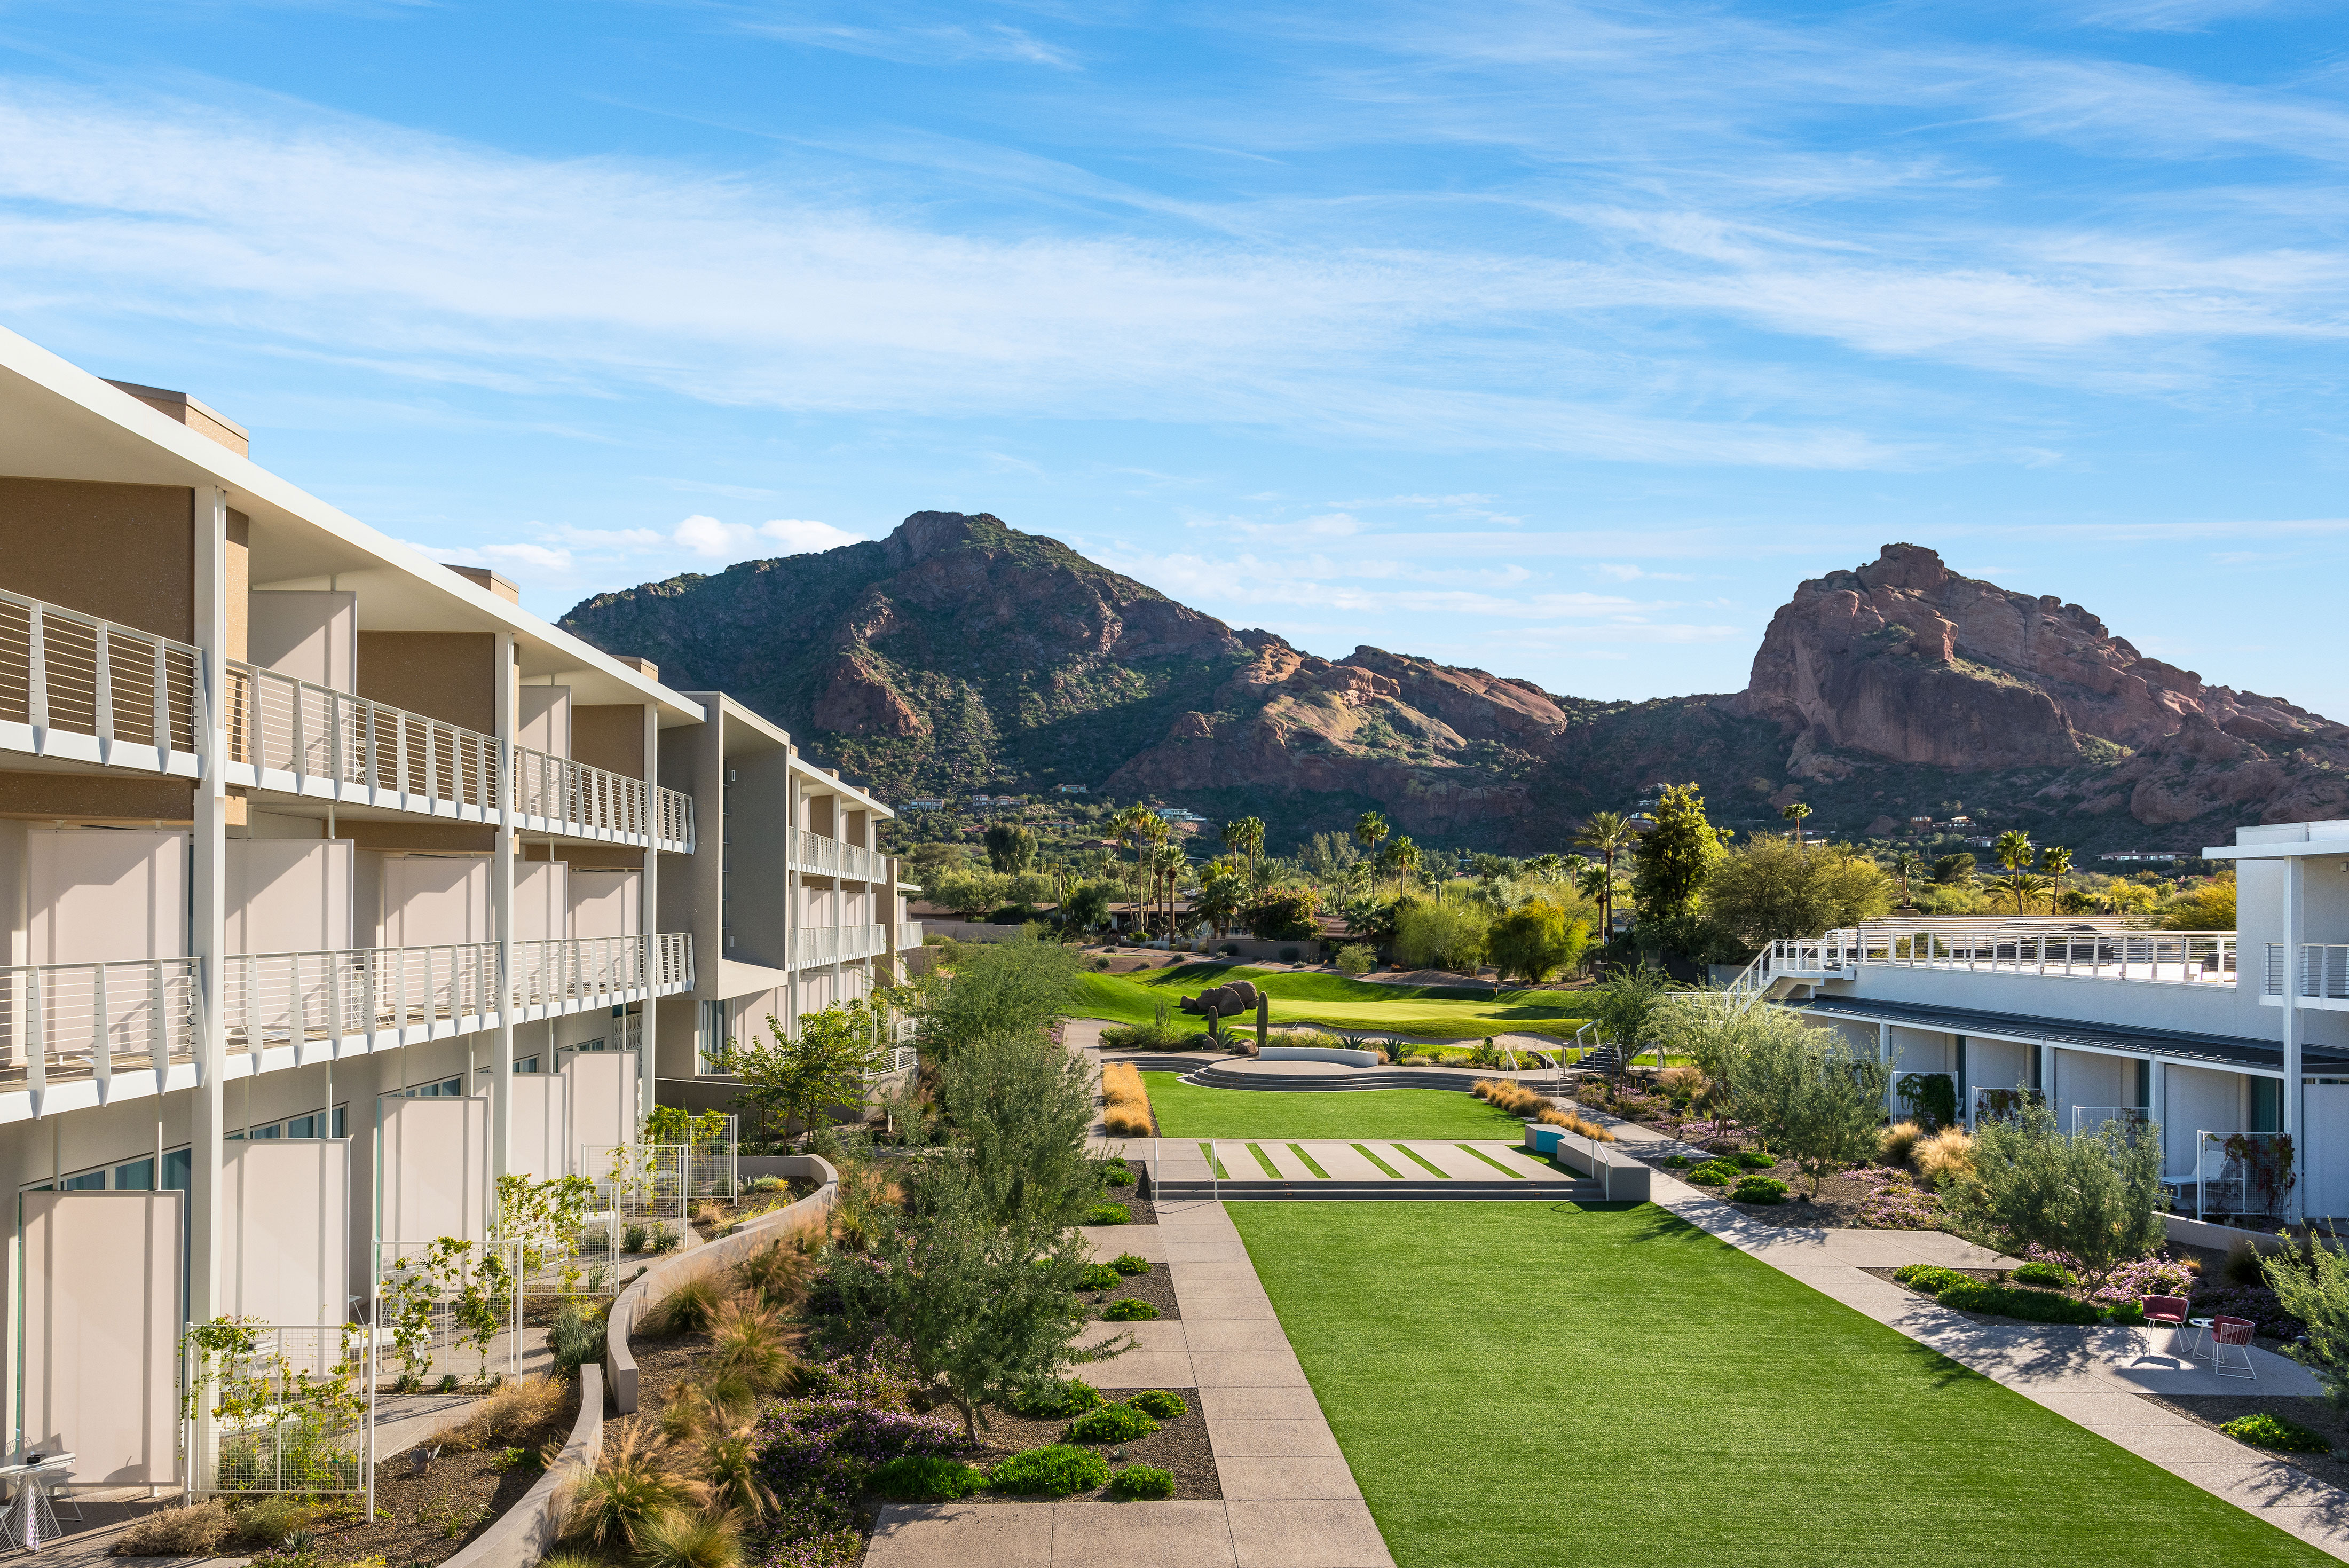 phoenix hotels arizona travel design destination mountain shadows resort camelback mountain